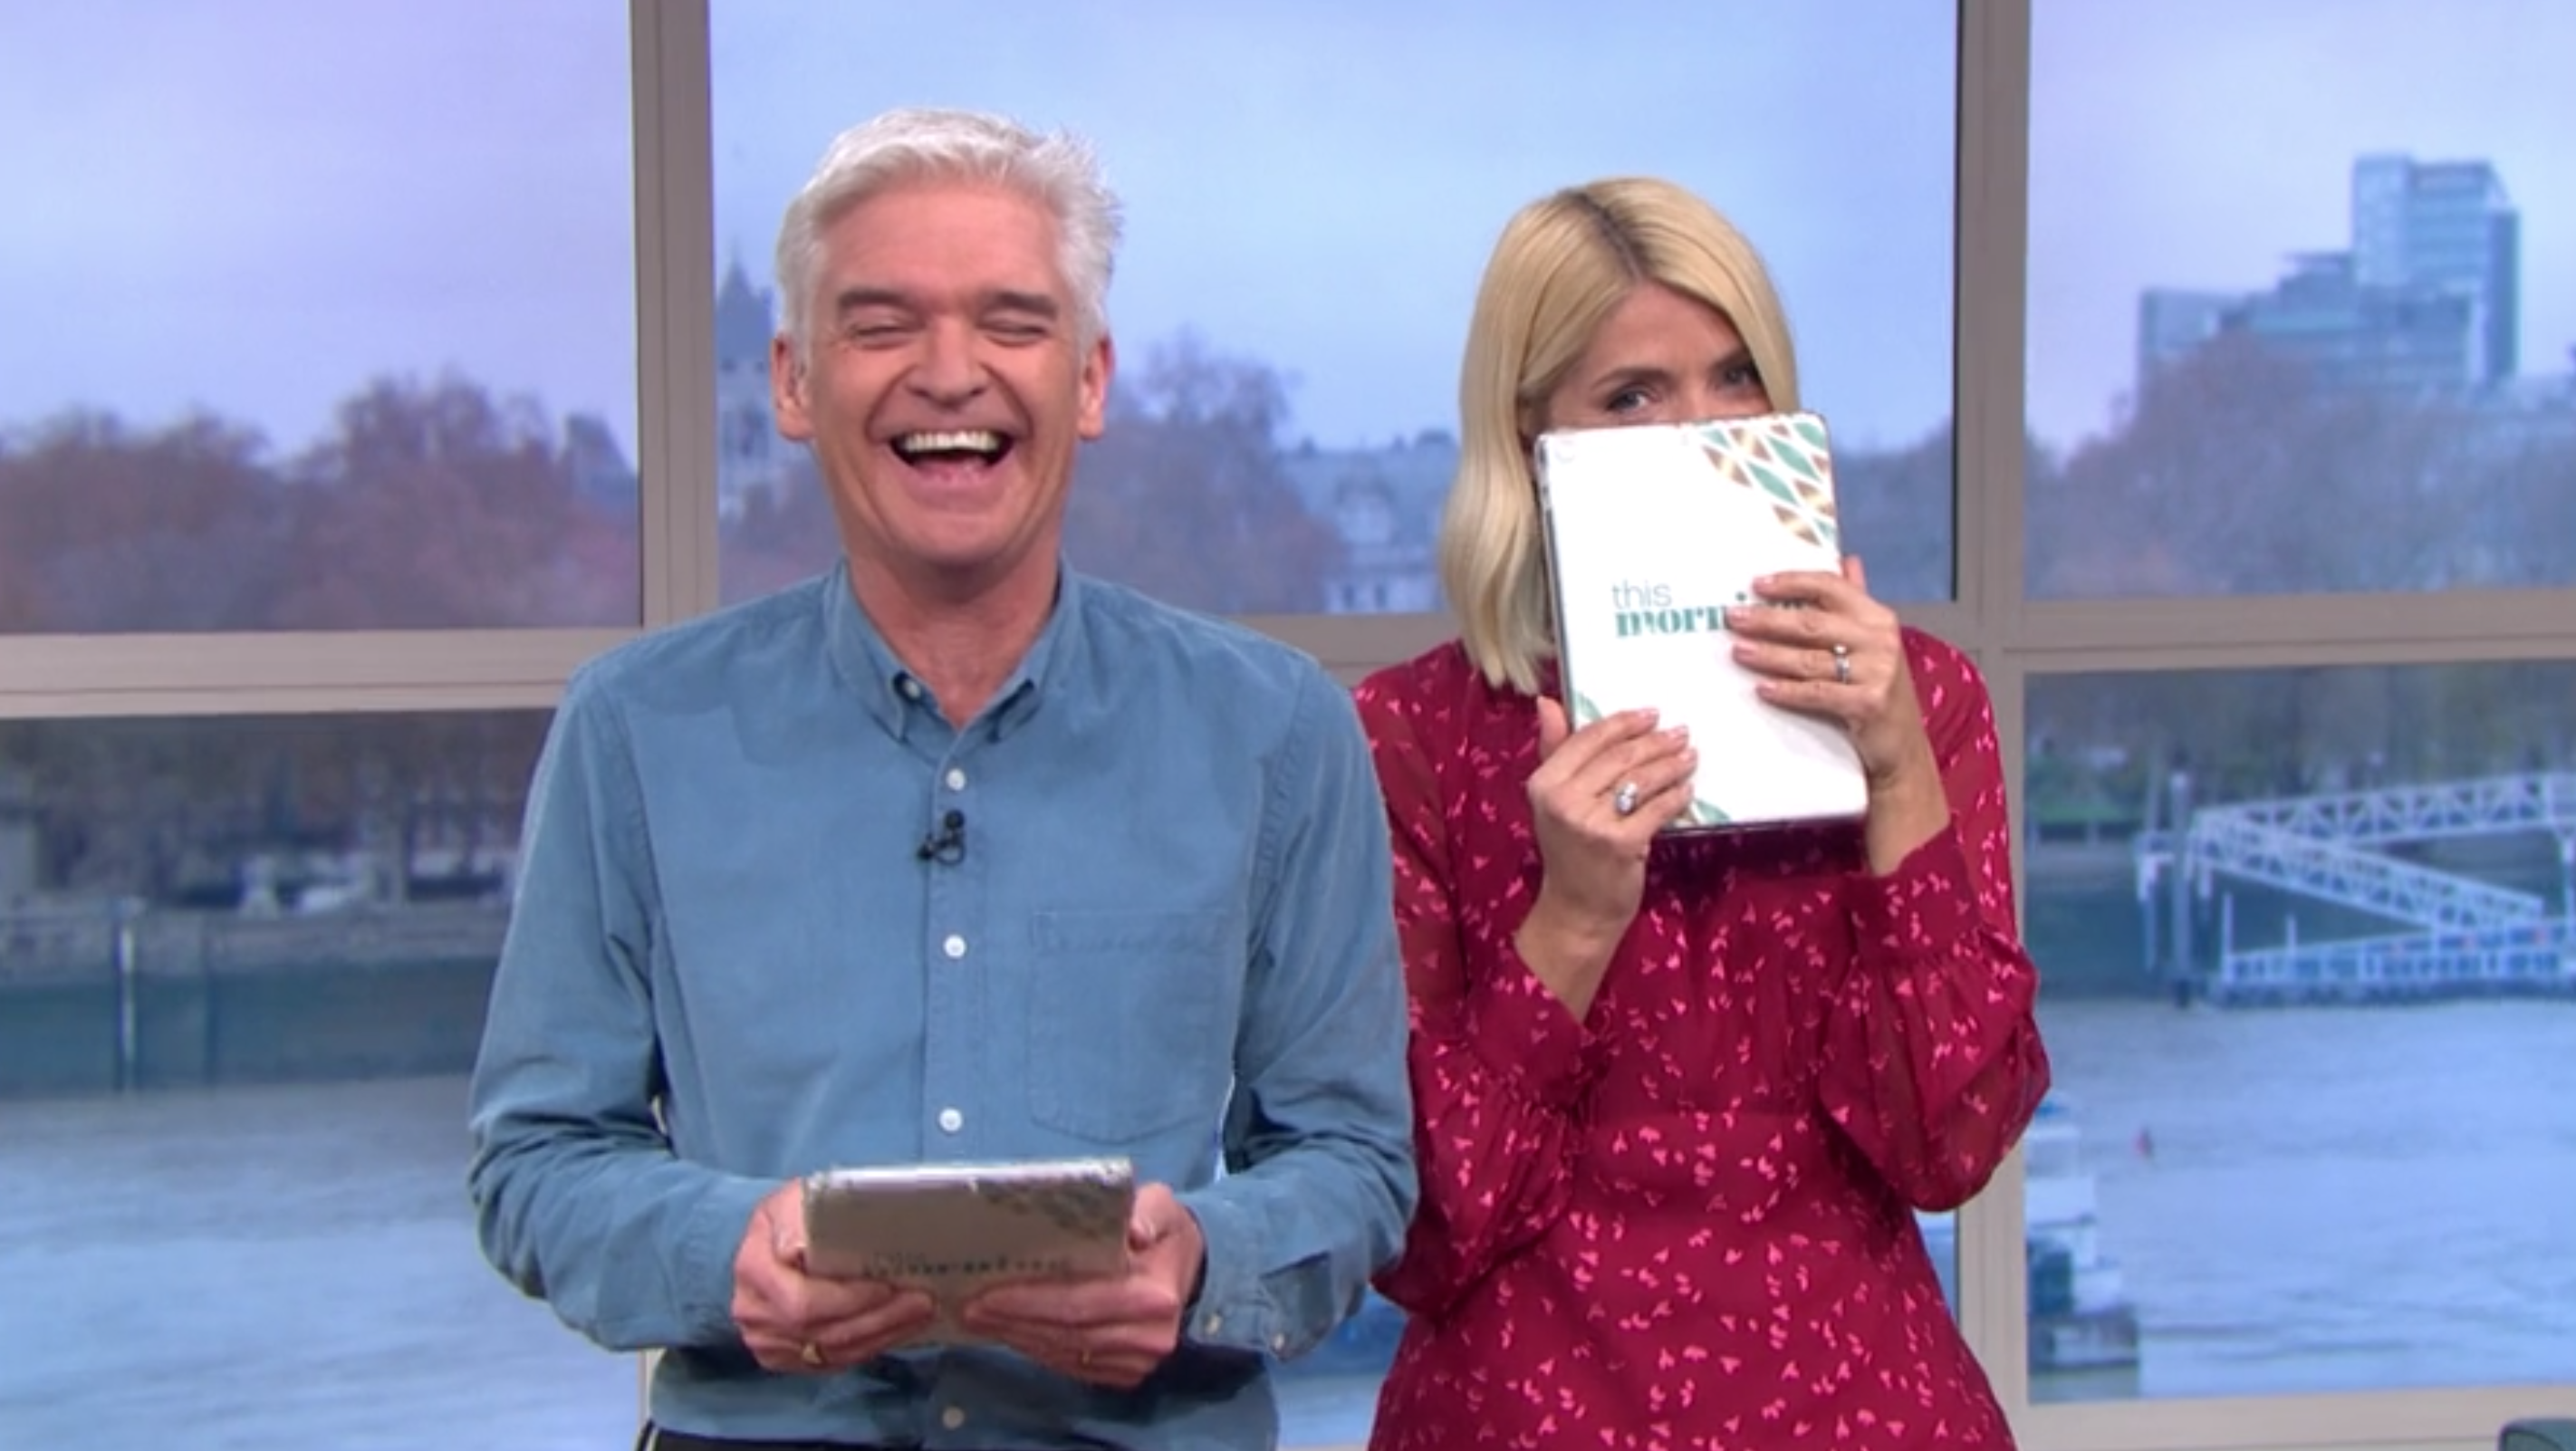 Phillip Schofield and Holly Willoughby unable to control their giggles at unintentionally rude children's drawings